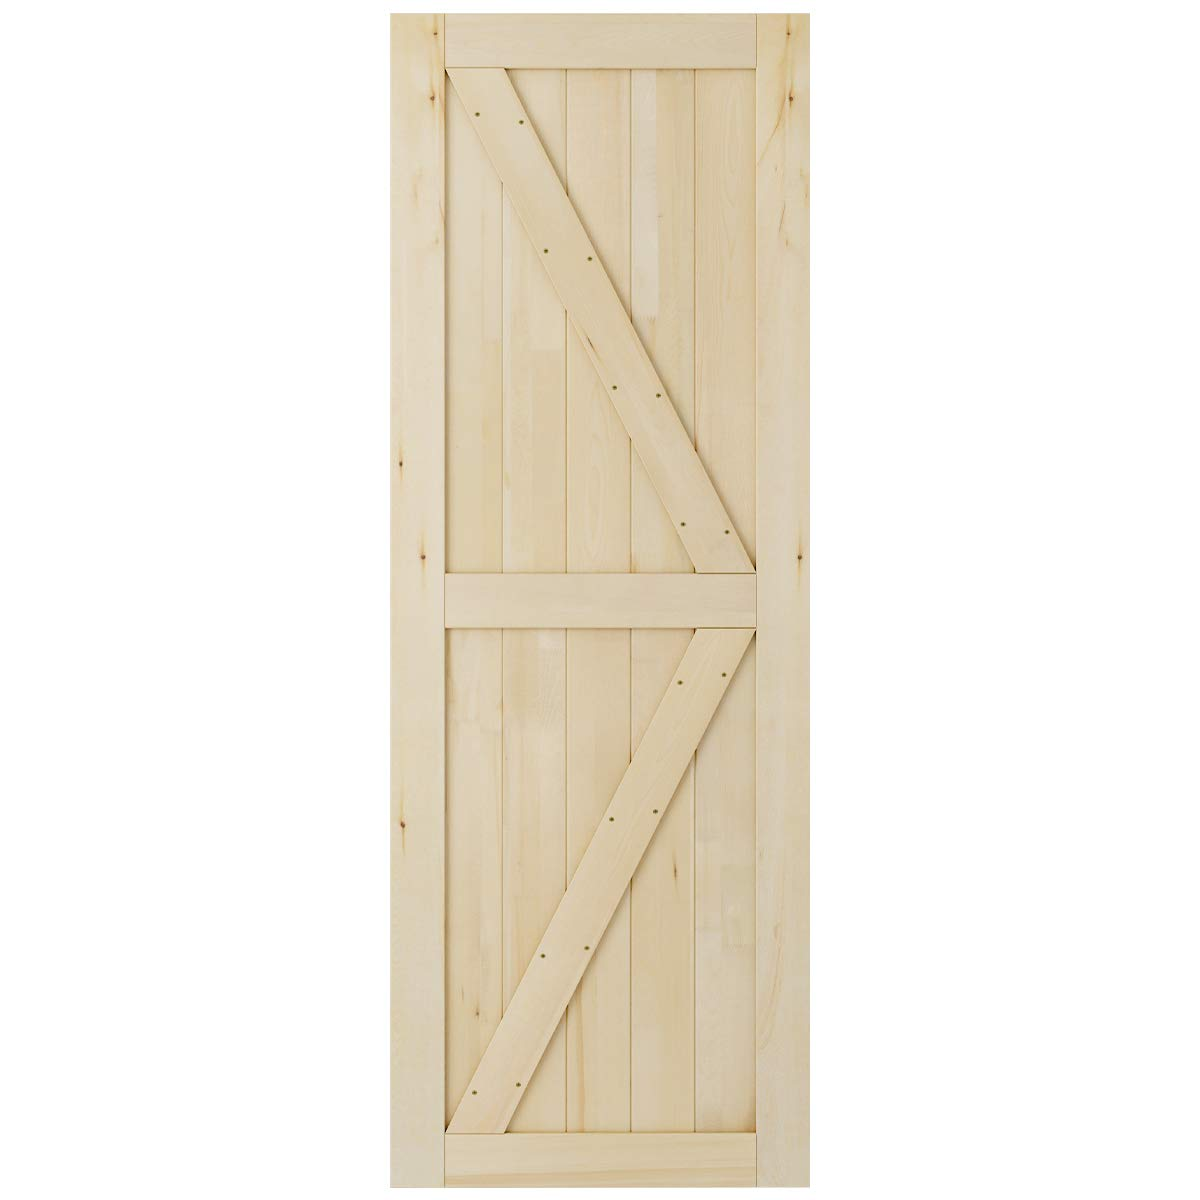 SmartStandard 30in x 84in Sliding Barn Wood Door Pre-Drilled Ready to Assemble, DIY Unfinished Solid Cypress Wood Panelled Slab, Interior Single Door Only, Natural, K-Frame